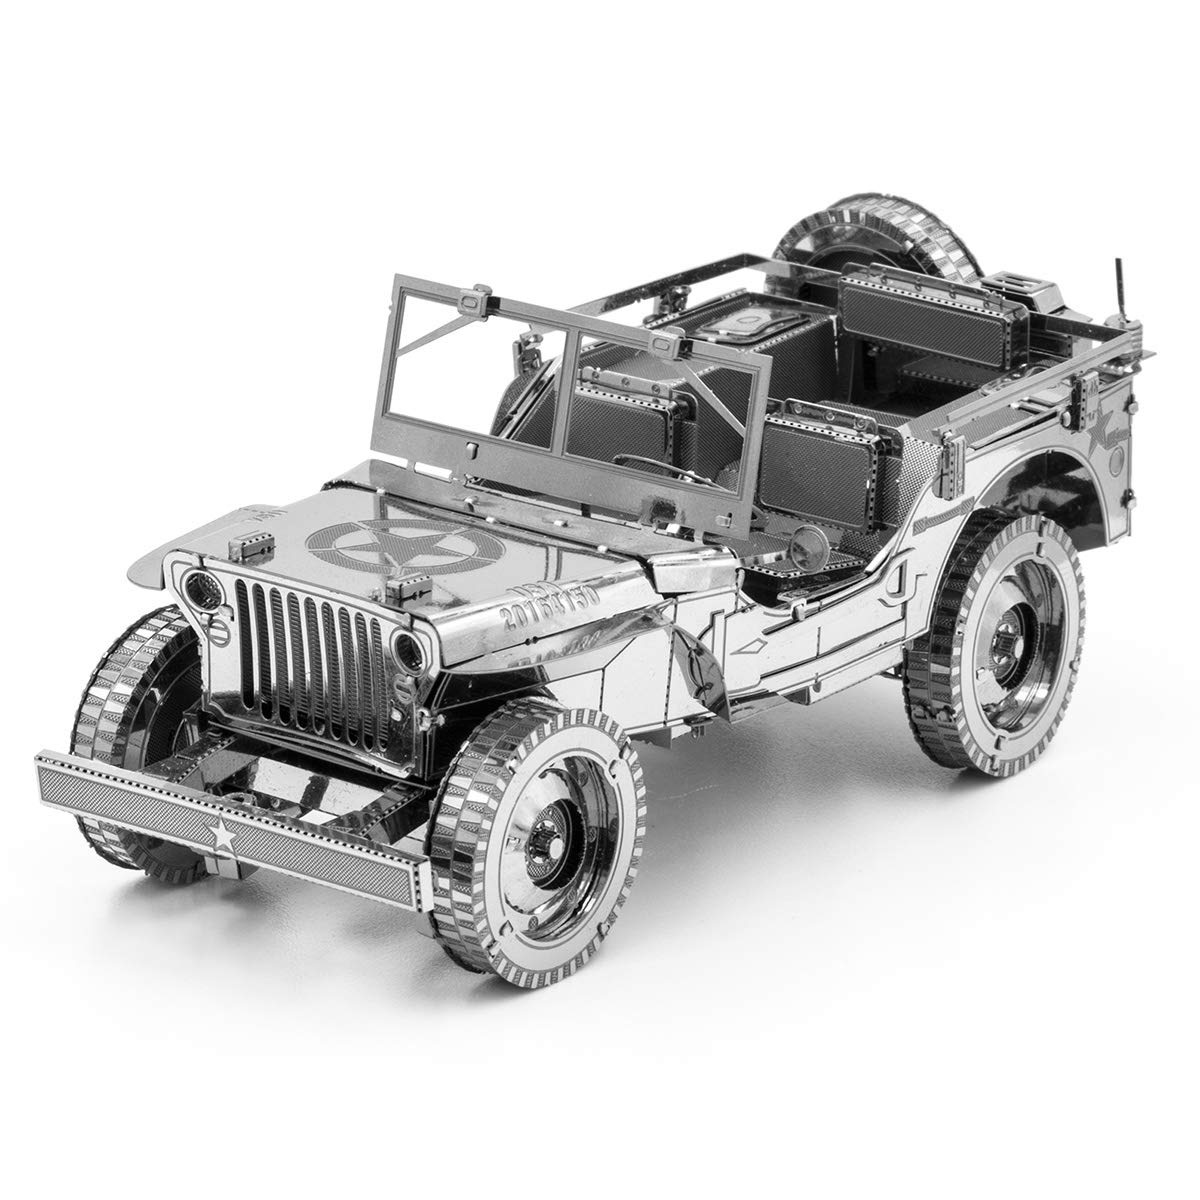 Fascinations Metal Earth ICONX Willys Overland 3D Metal Model Kit